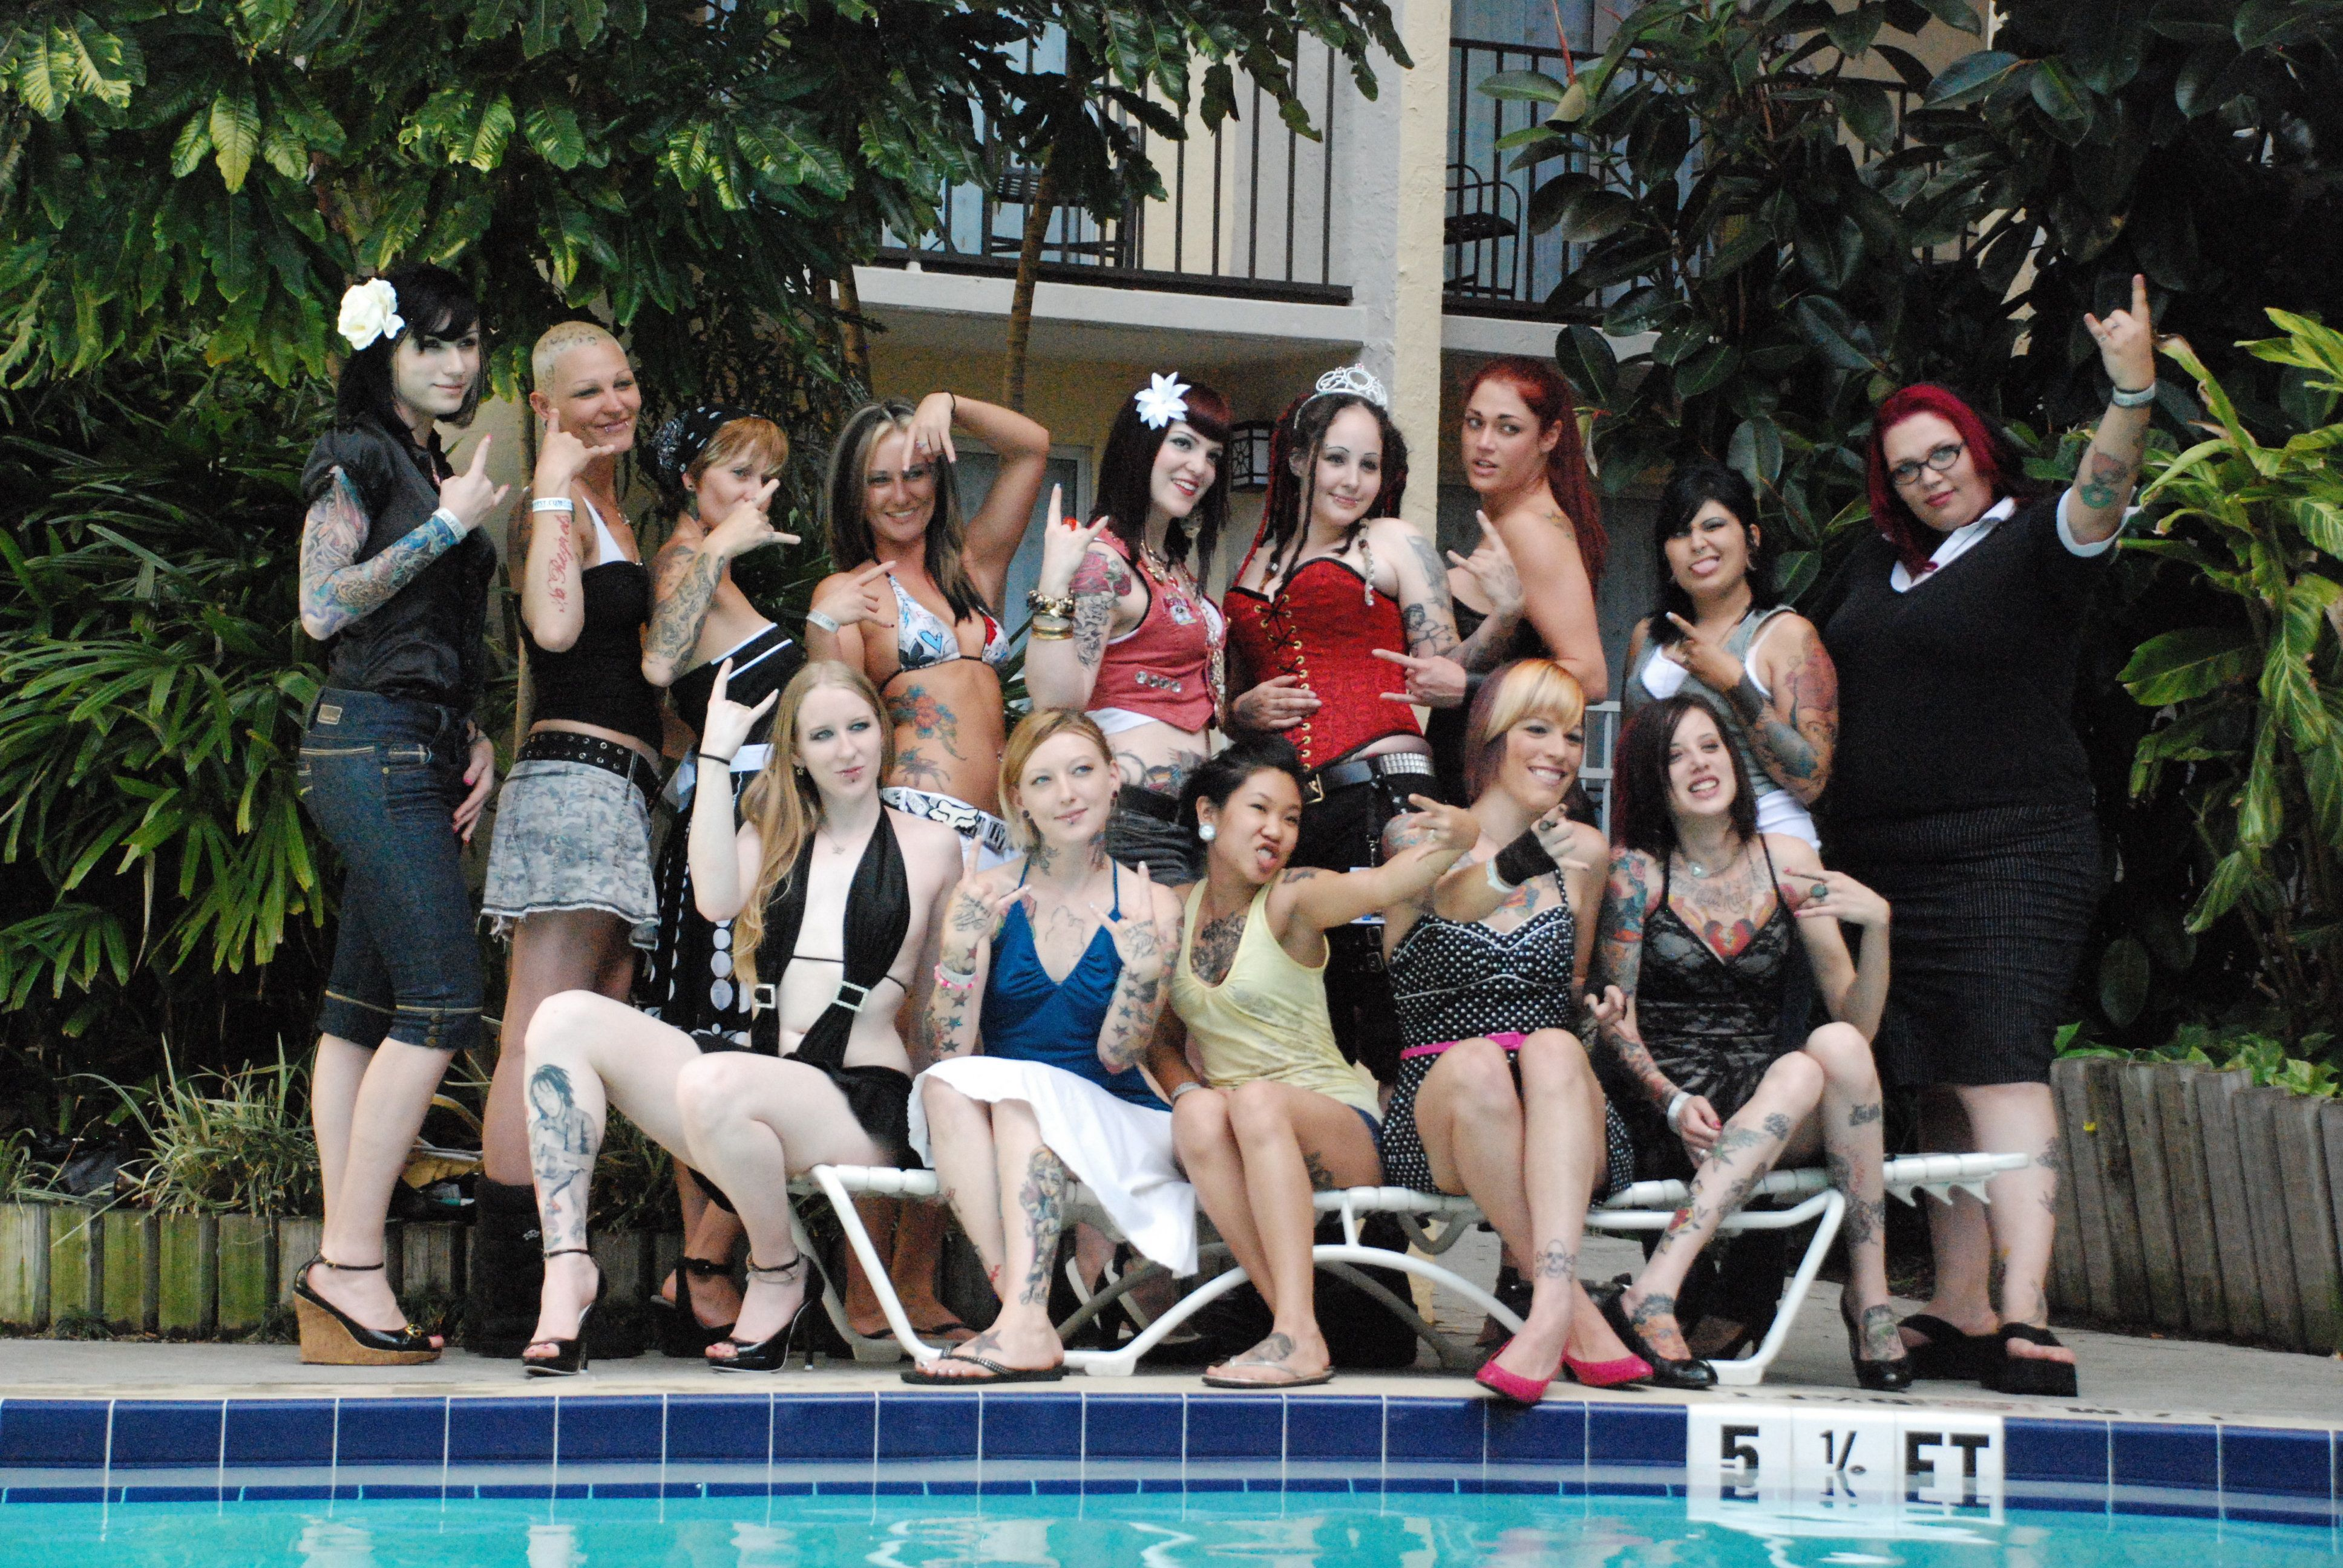 <span>Tampa Tattoo Fest 2007, where a tattooed woman beauty pageant was held</span>